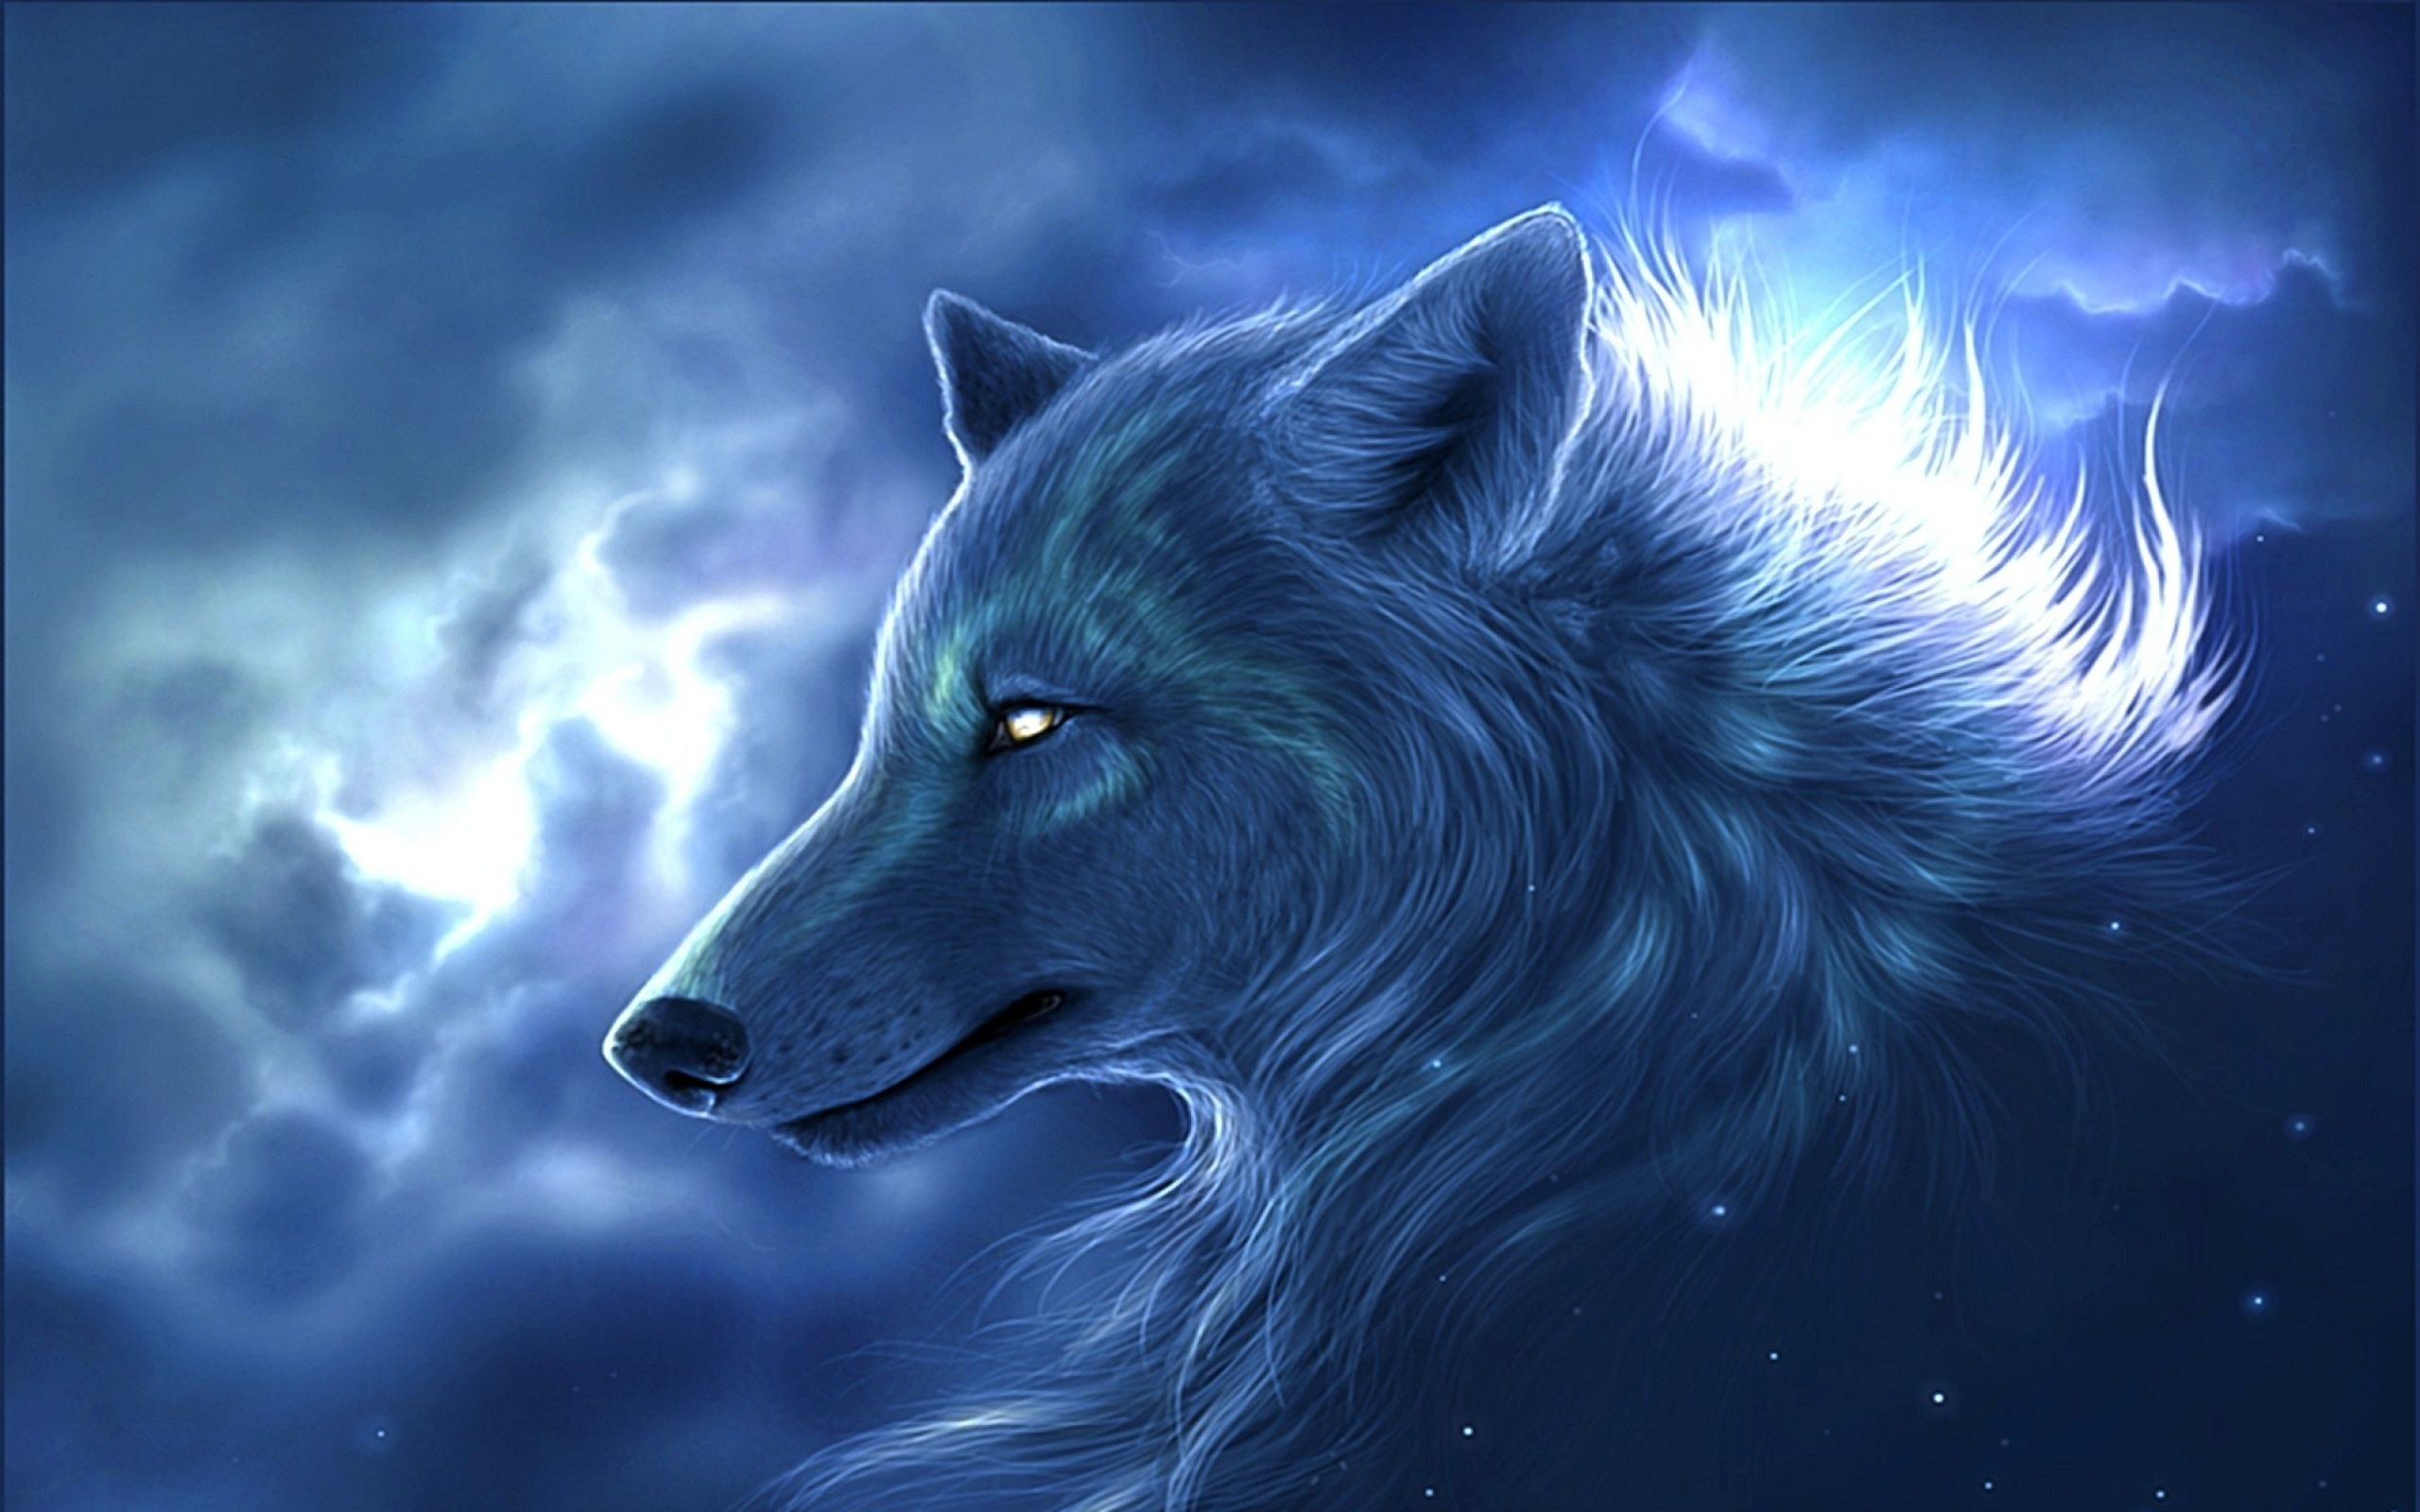 Awesome Fond D Ecran Animaux Hd 13 Check More At Http All Images Net Fond Decran Animaux Hd 13 Fond D Ecran Loup Animales Fond Ecran Animaux